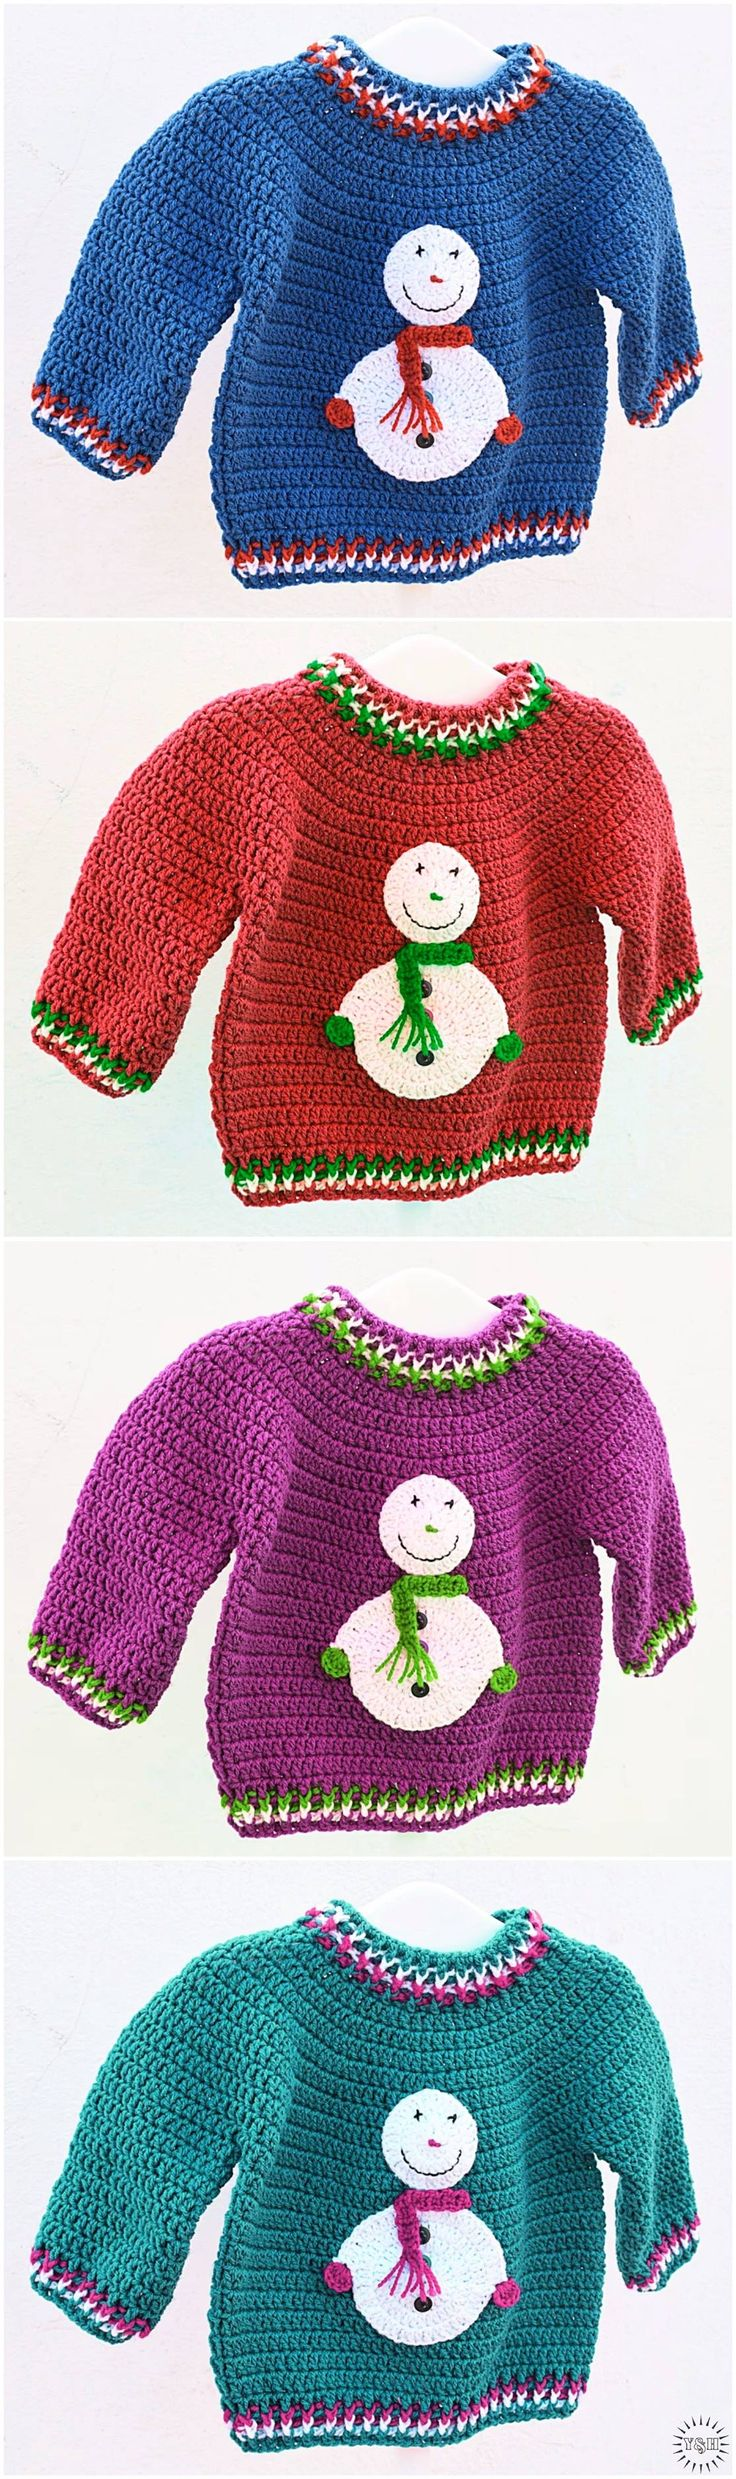 Christmas Sweater Free Crochet Pattern + Video